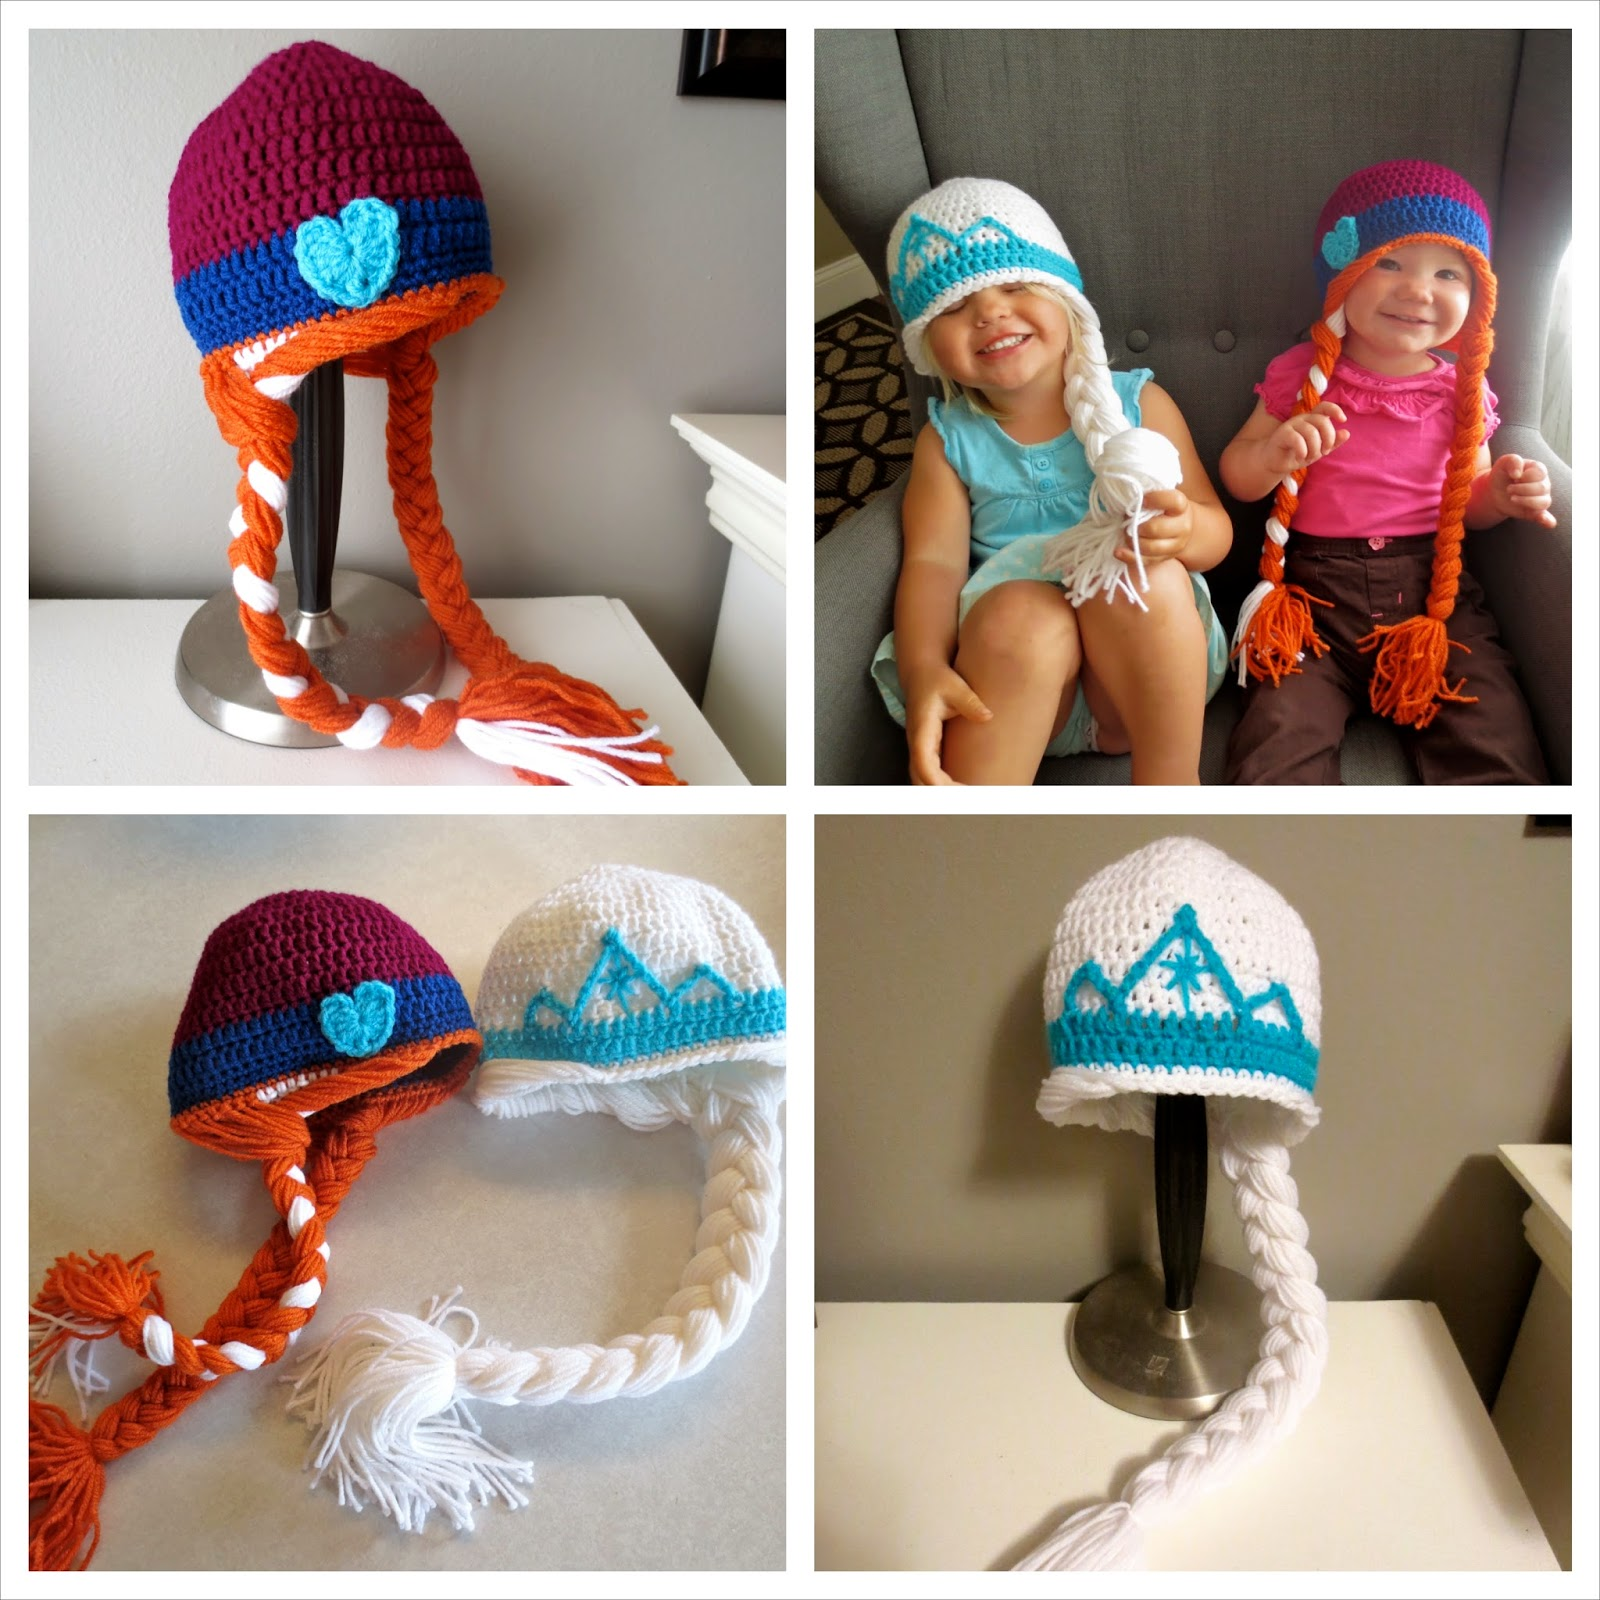 Handiy Tutorials Frozen Inspired Crochet Hats